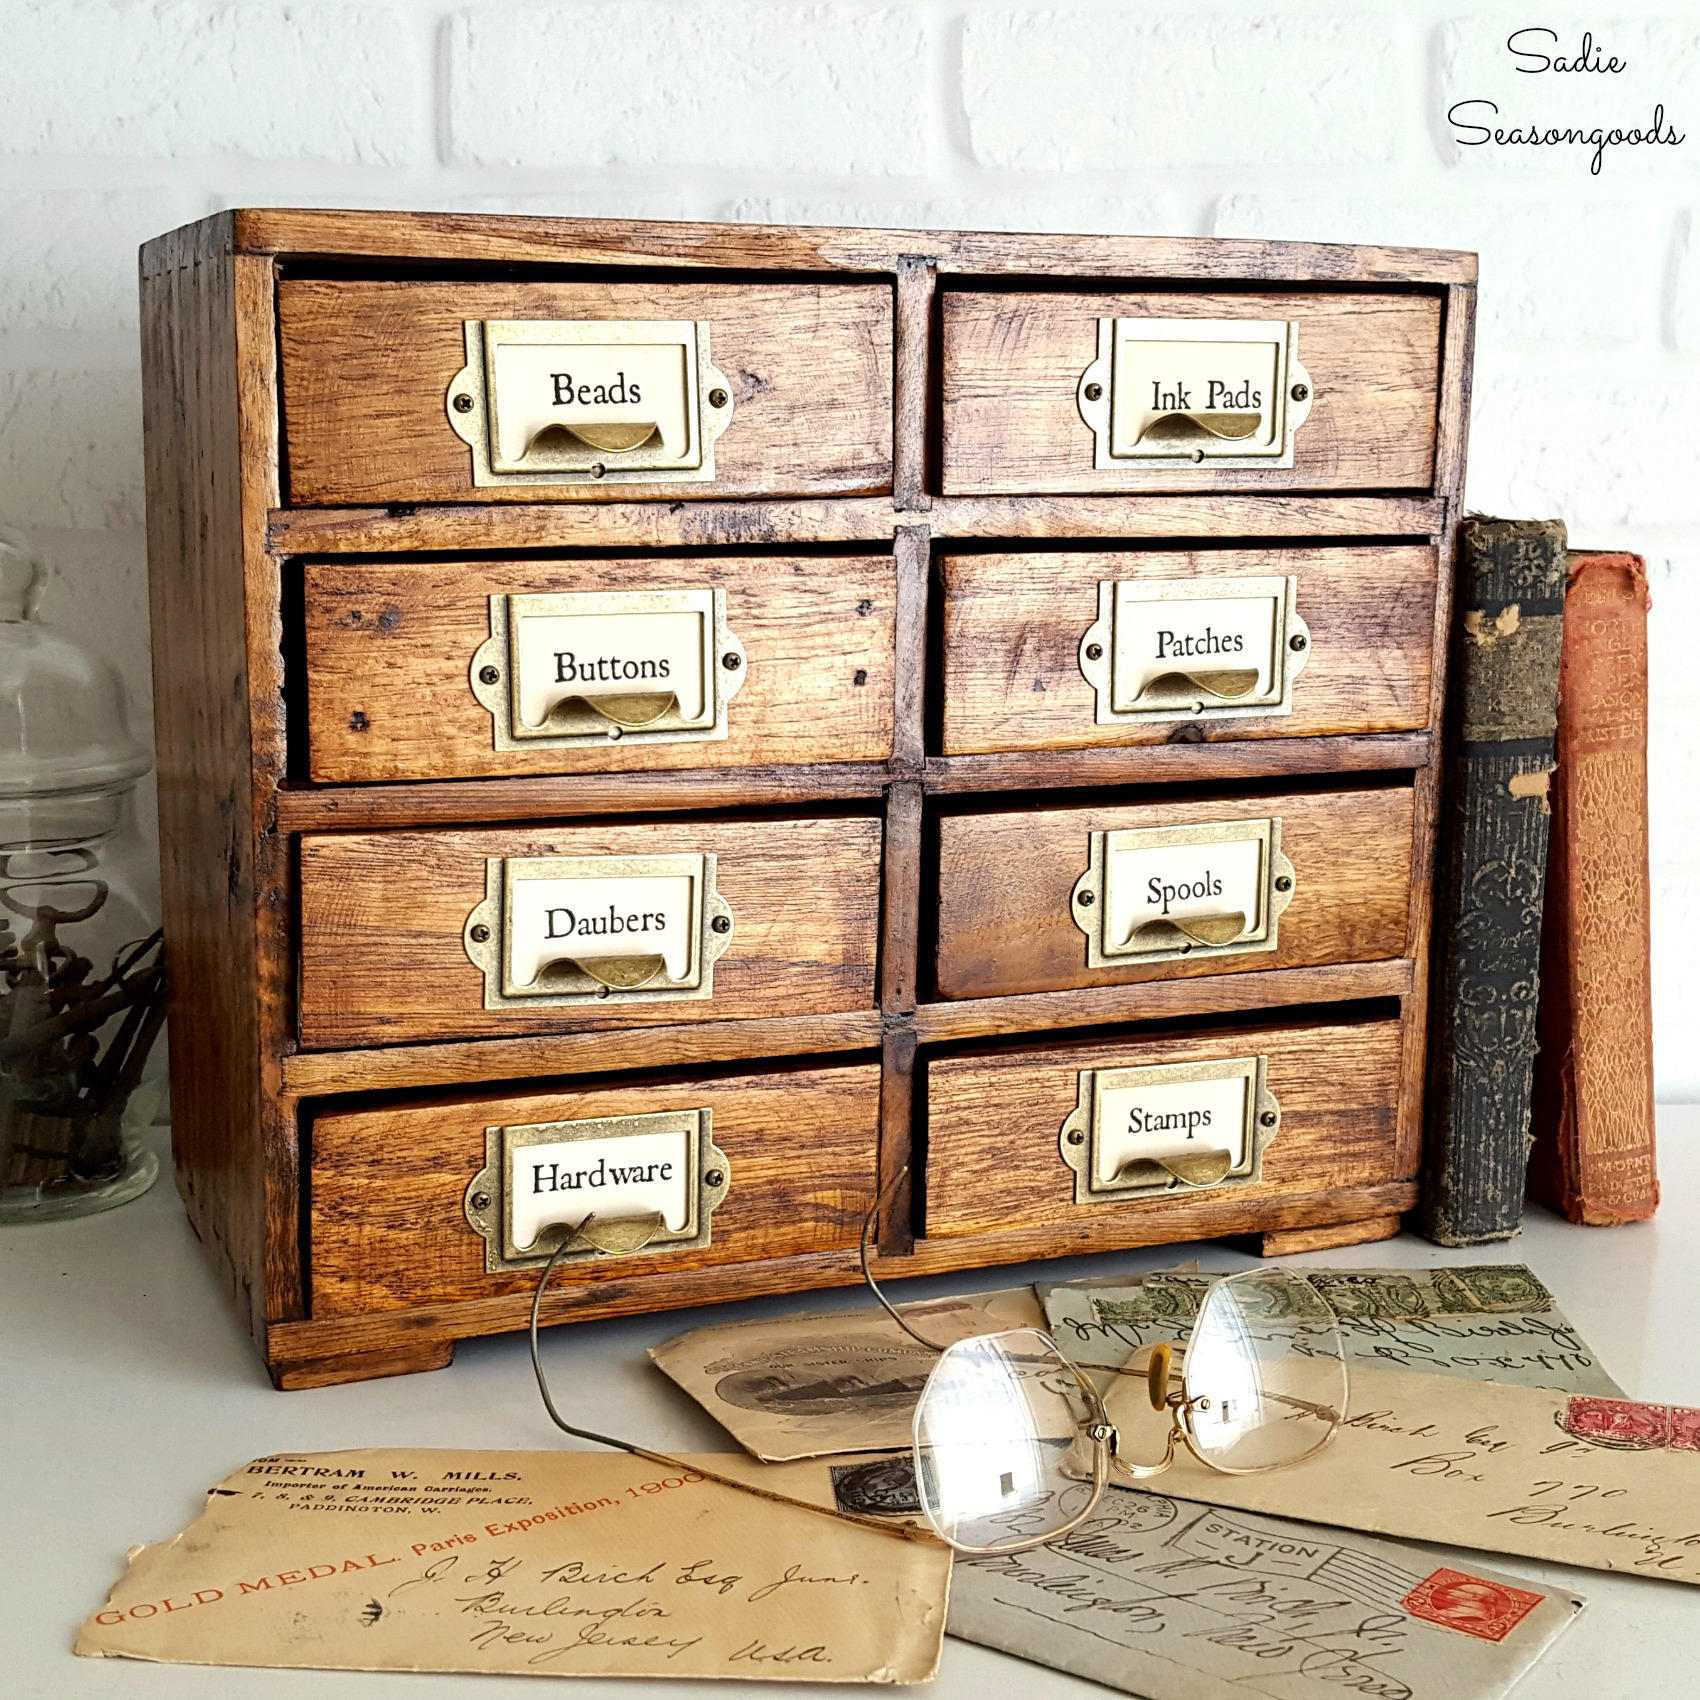 Card catalog cubby makeover by Sadie Seasongoods, featured on Funky Junk Interiors